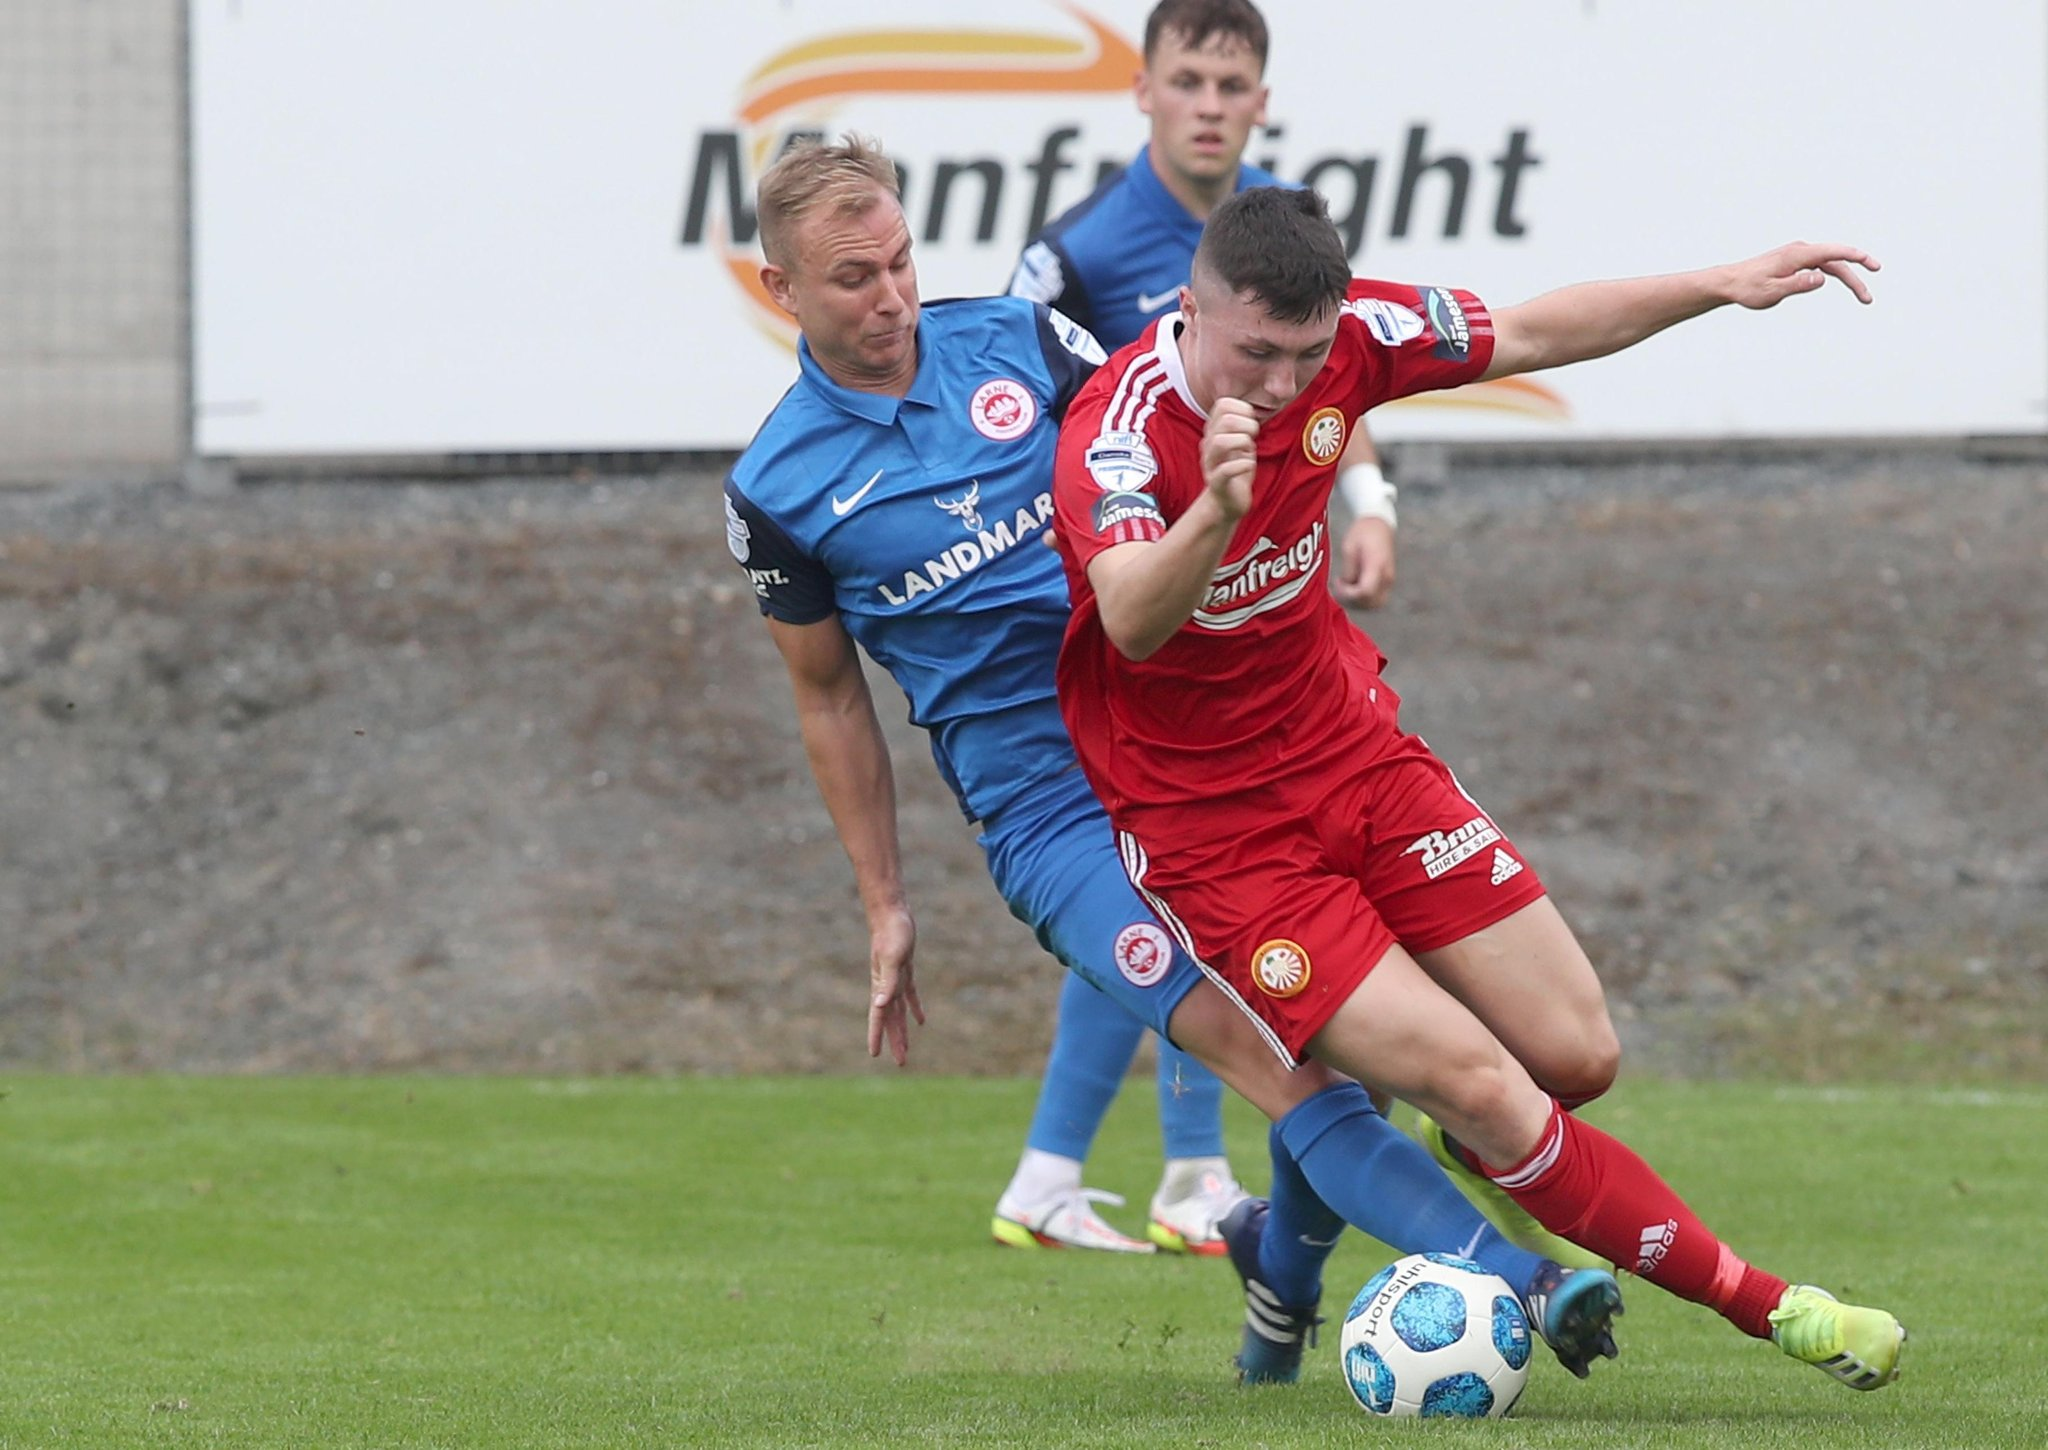 Andrew Mitchell the Larne midfield anchor in eye of attacking storm